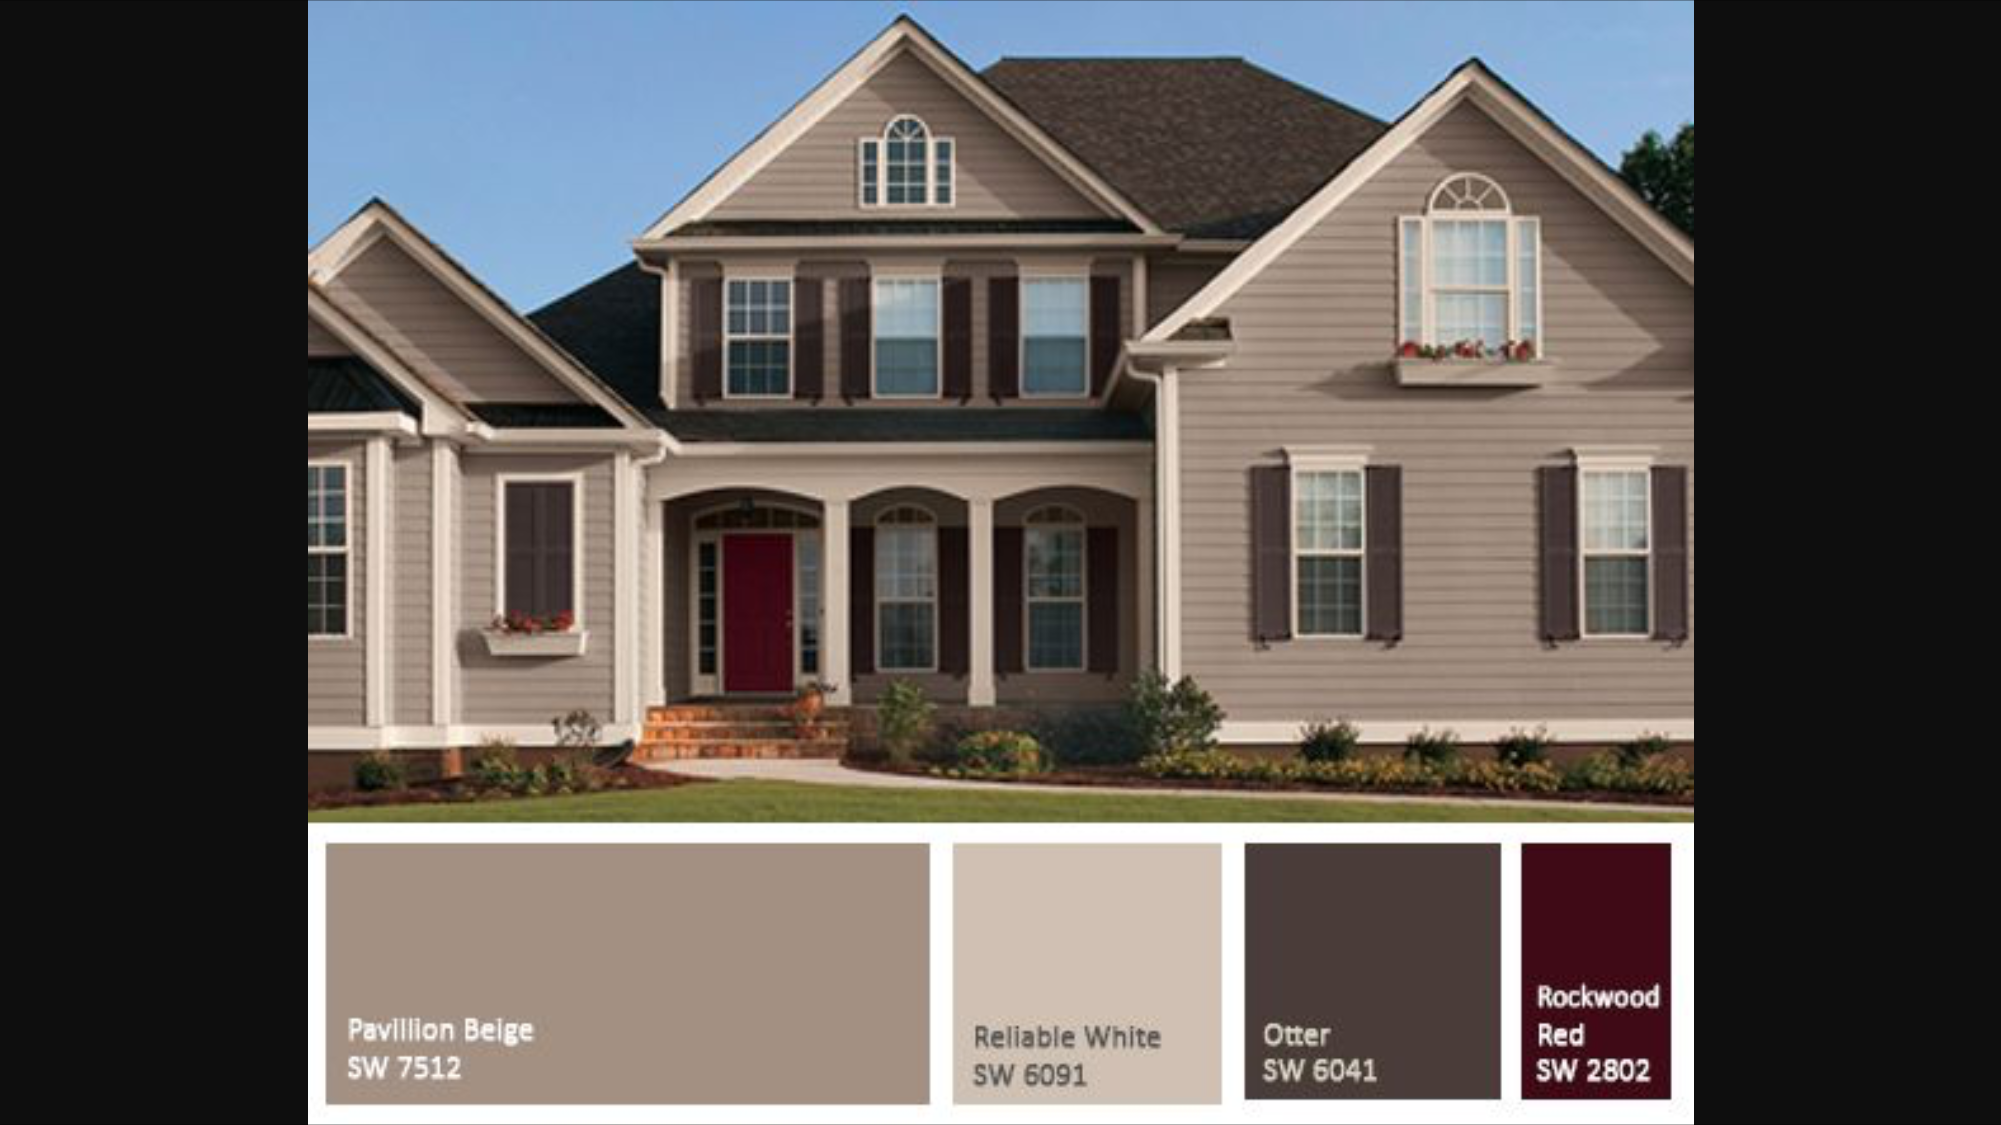 Pingl par nancy schaffer trupe sur exterior house colors pinterest for Sherwin williams homestead brown exterior